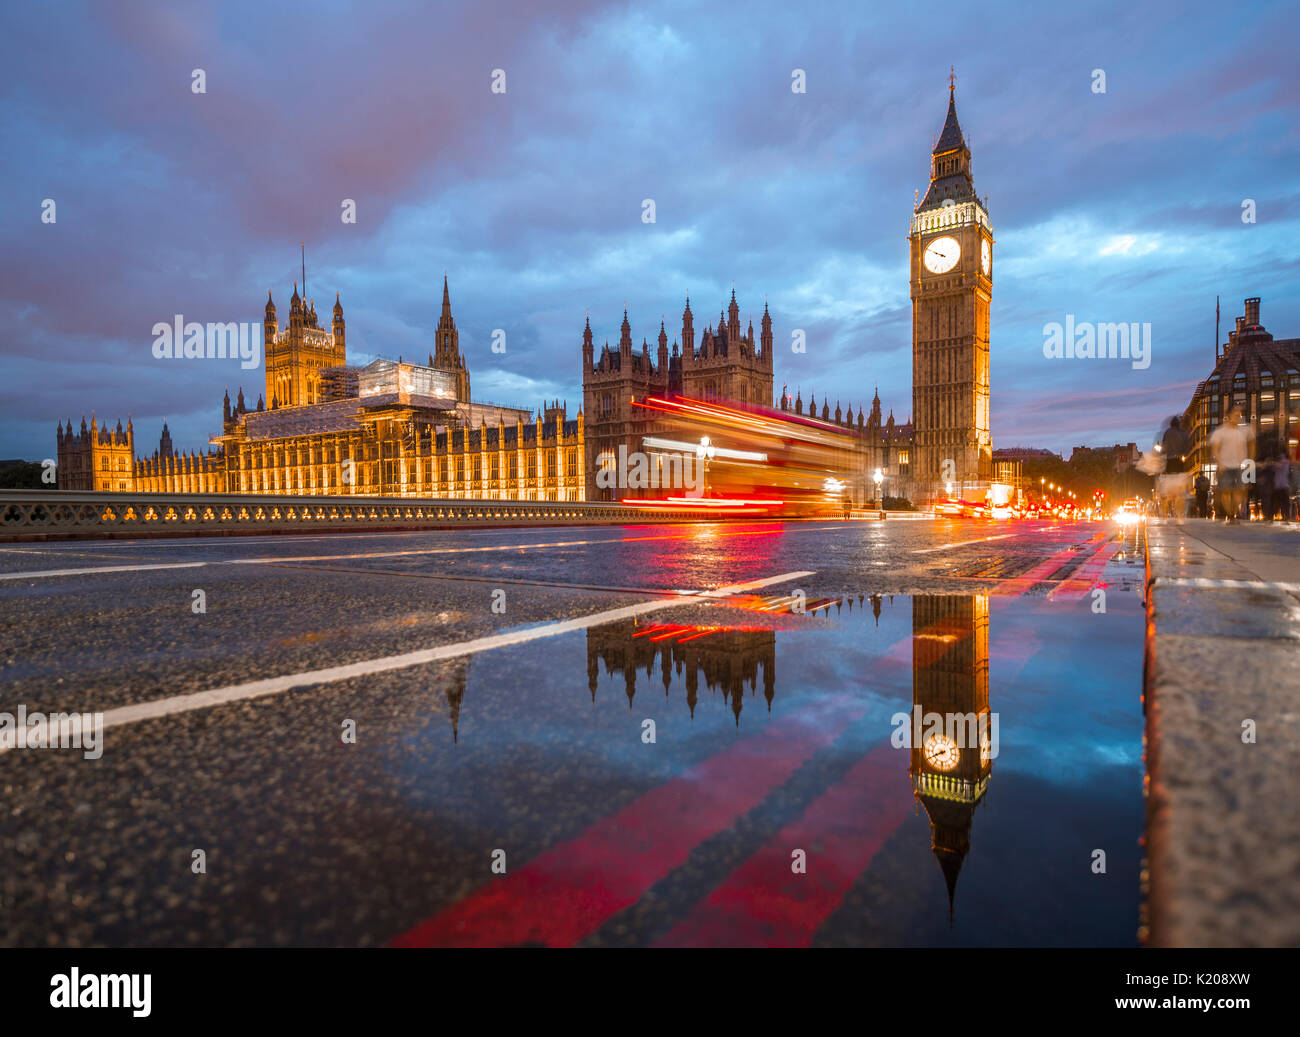 Light traces, double-deck bus, Westminster Bridge, Palace of Westminster, Houses of Parliament with reflection, Big Ben - Stock Image